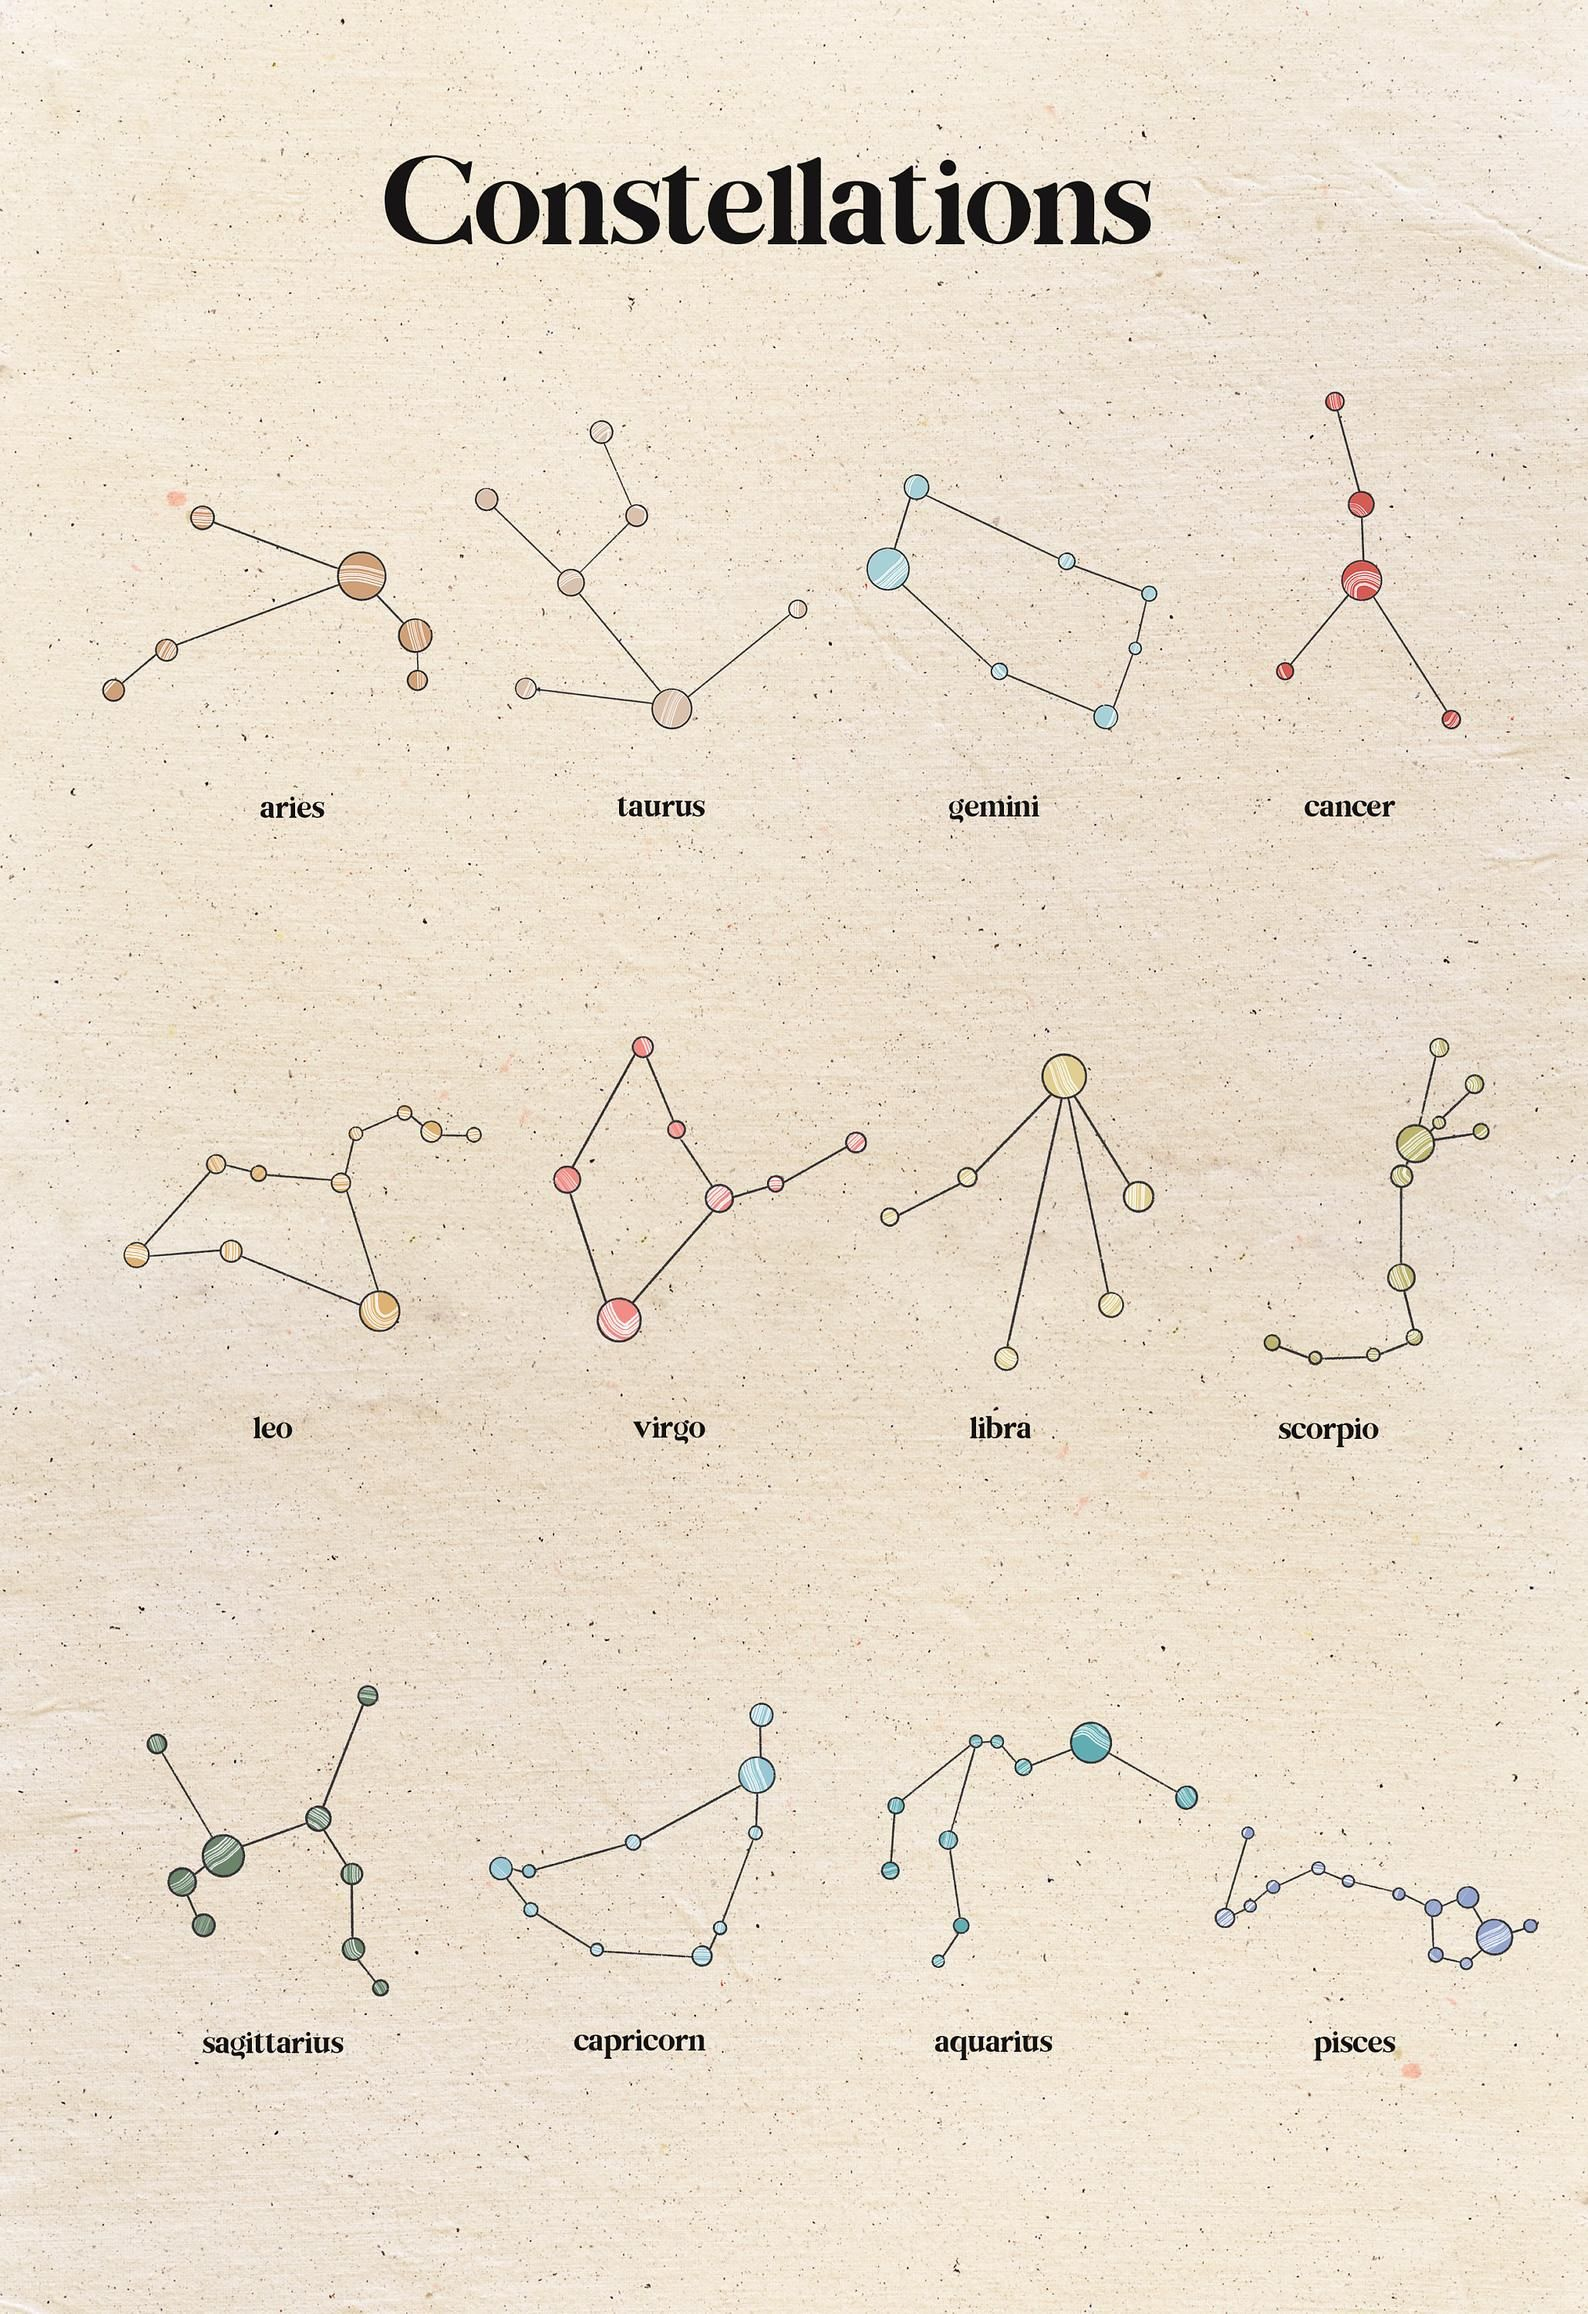 Astrology clipart, zodiac signs clipart, constellation clipart, horoscope clipart, moon phases clipart, zodiac symbols png